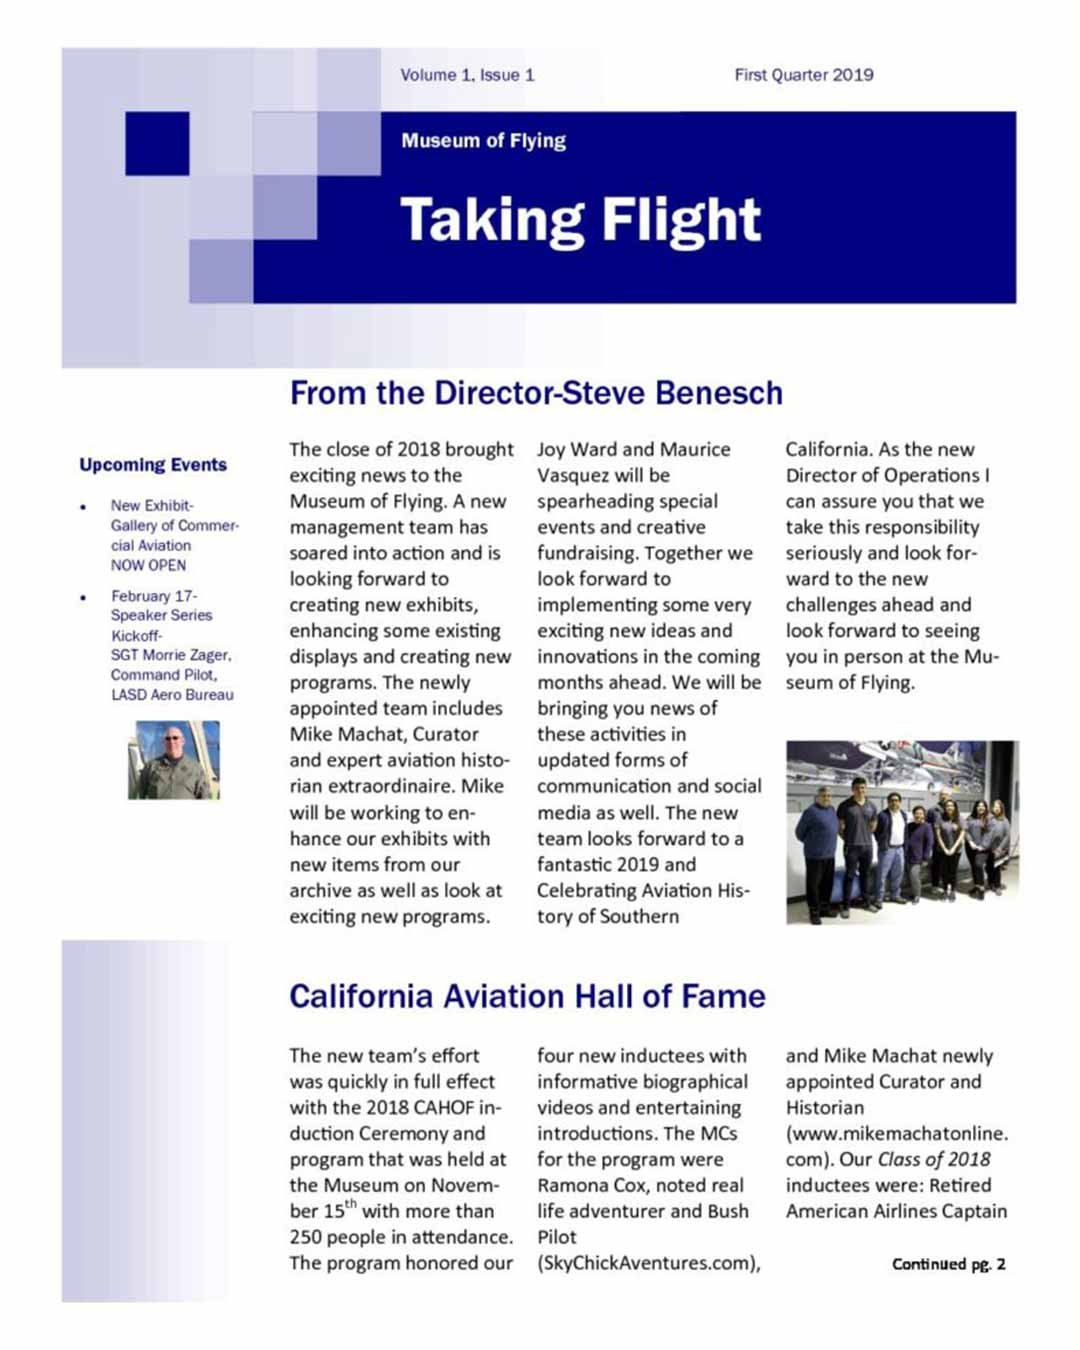 Taking Flight Newsletter - 2019 1st Quarter